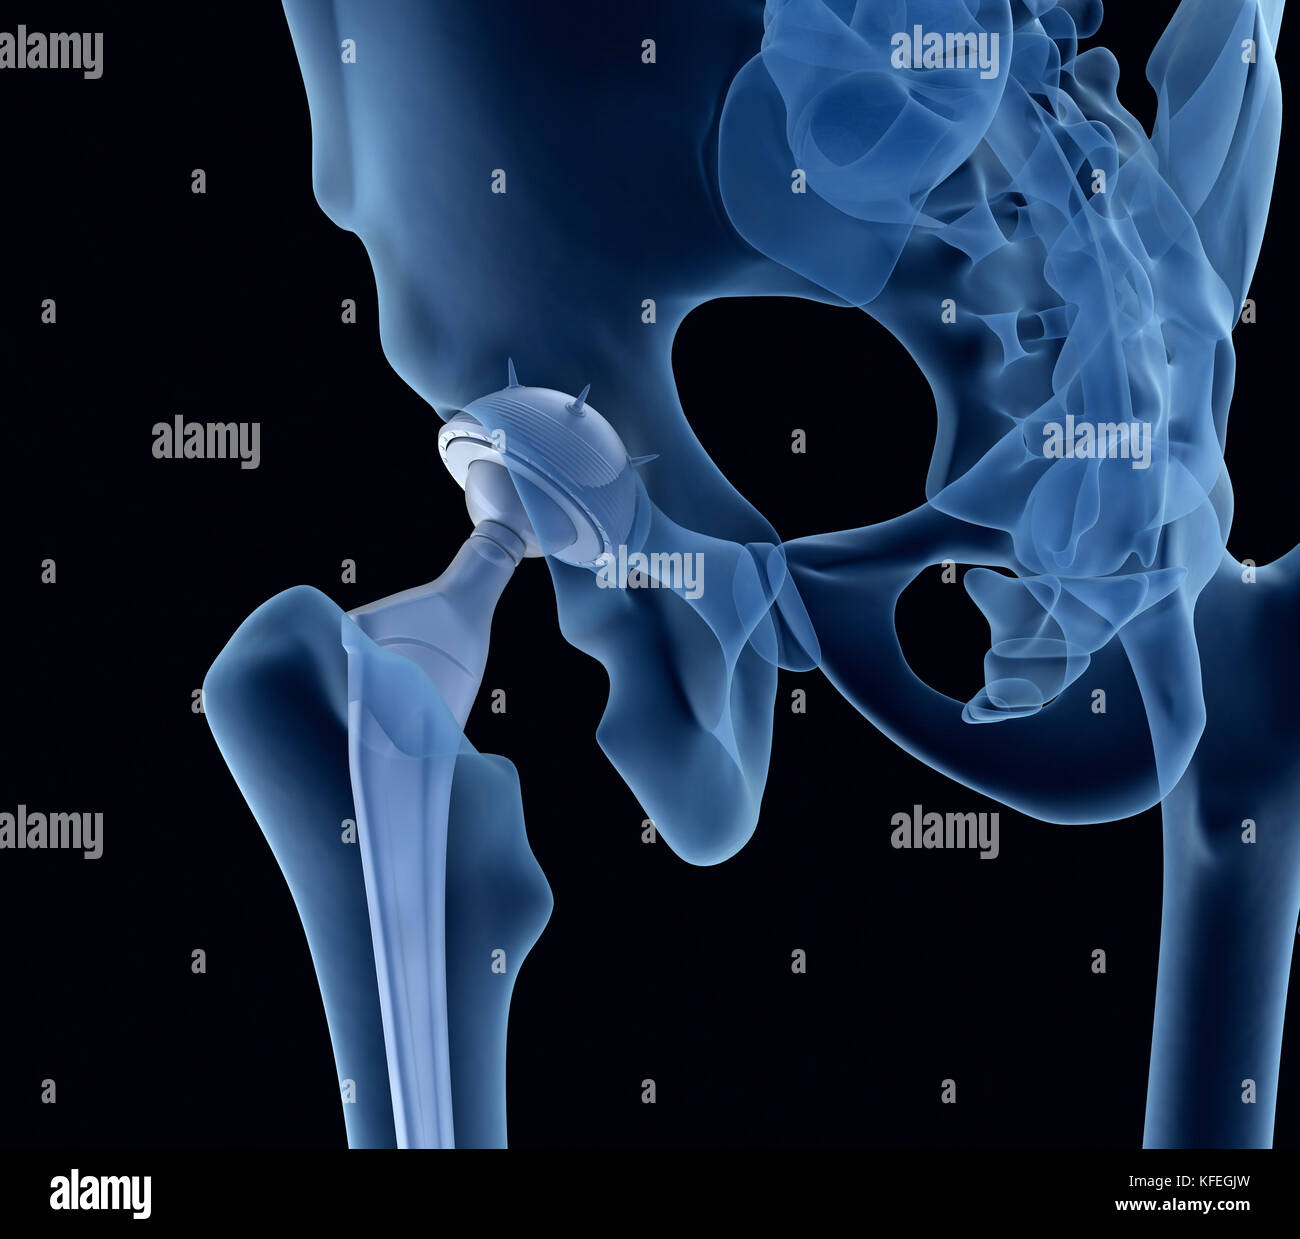 Hip replacement implant installed in the pelvis bone. X-ray view. Medically accurate 3D illustration - Stock Image